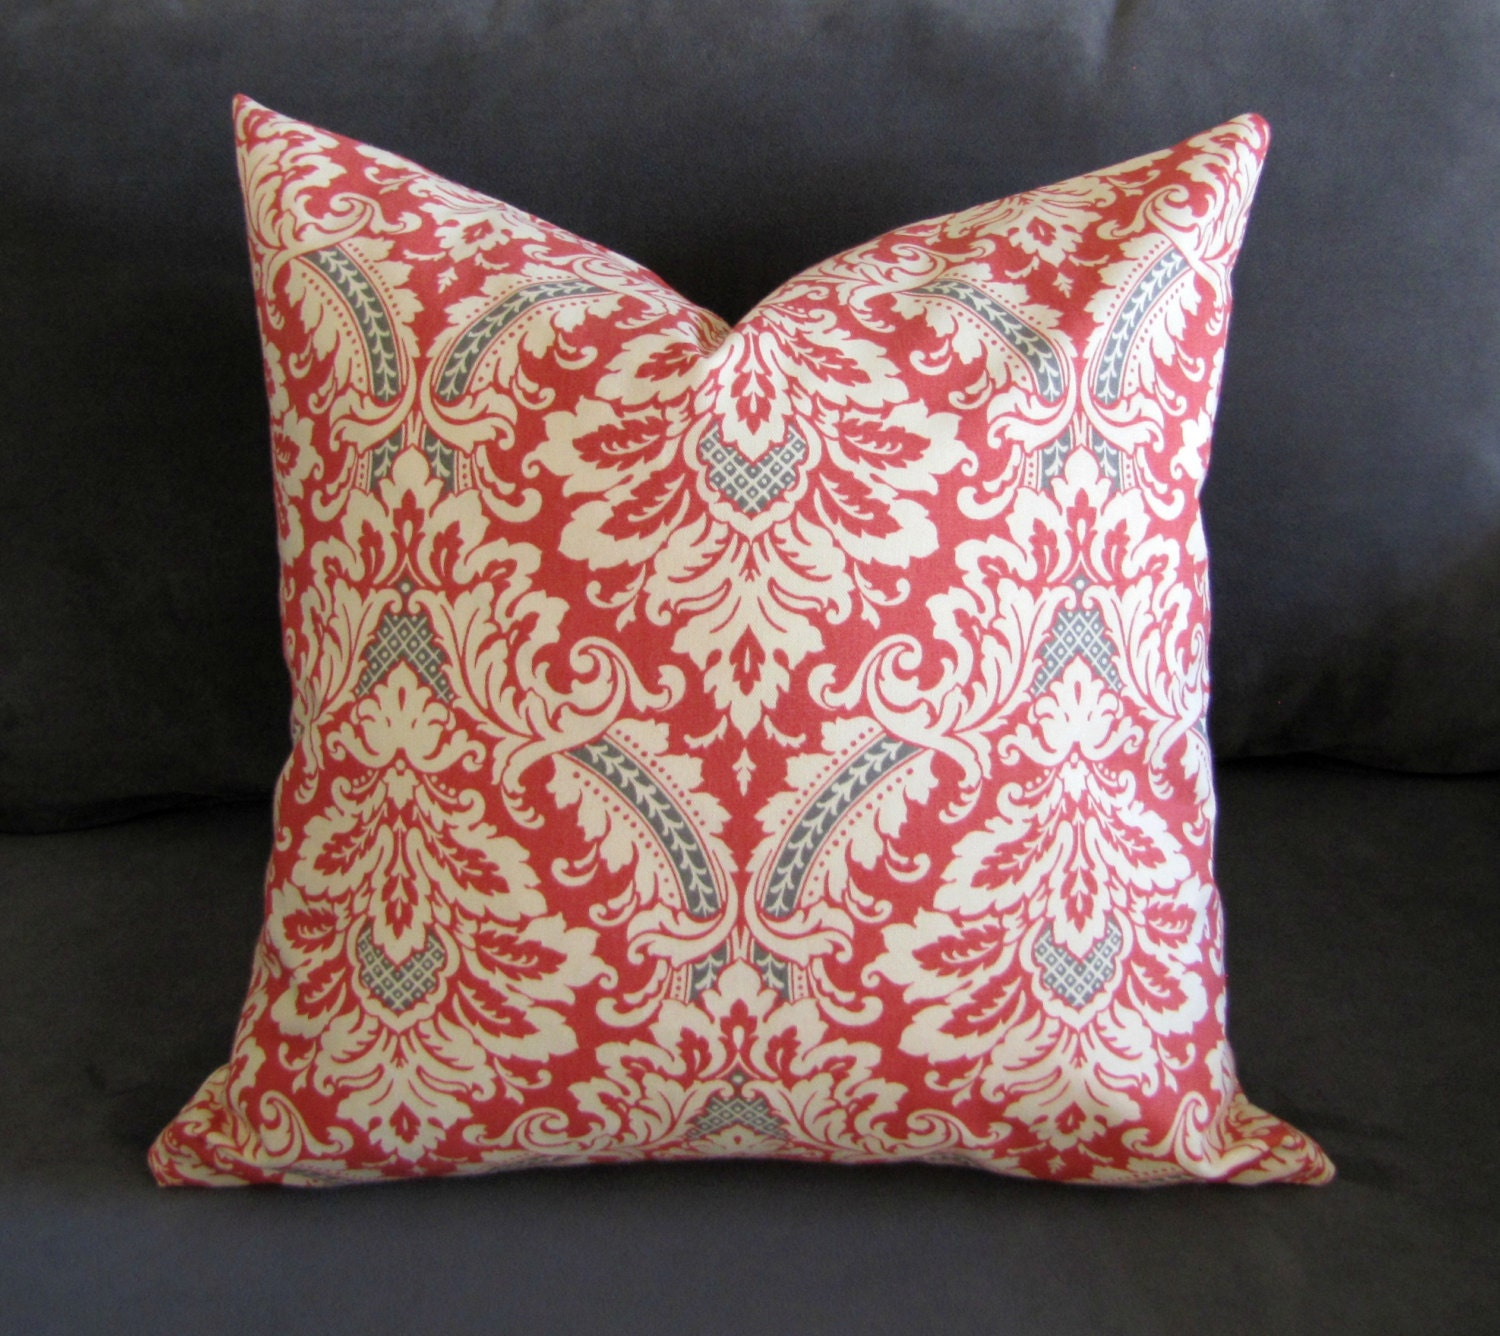 Orange Decorative Pillows Couch : Burnt orange throw pillow damask print sofa pillow by GratefulHome